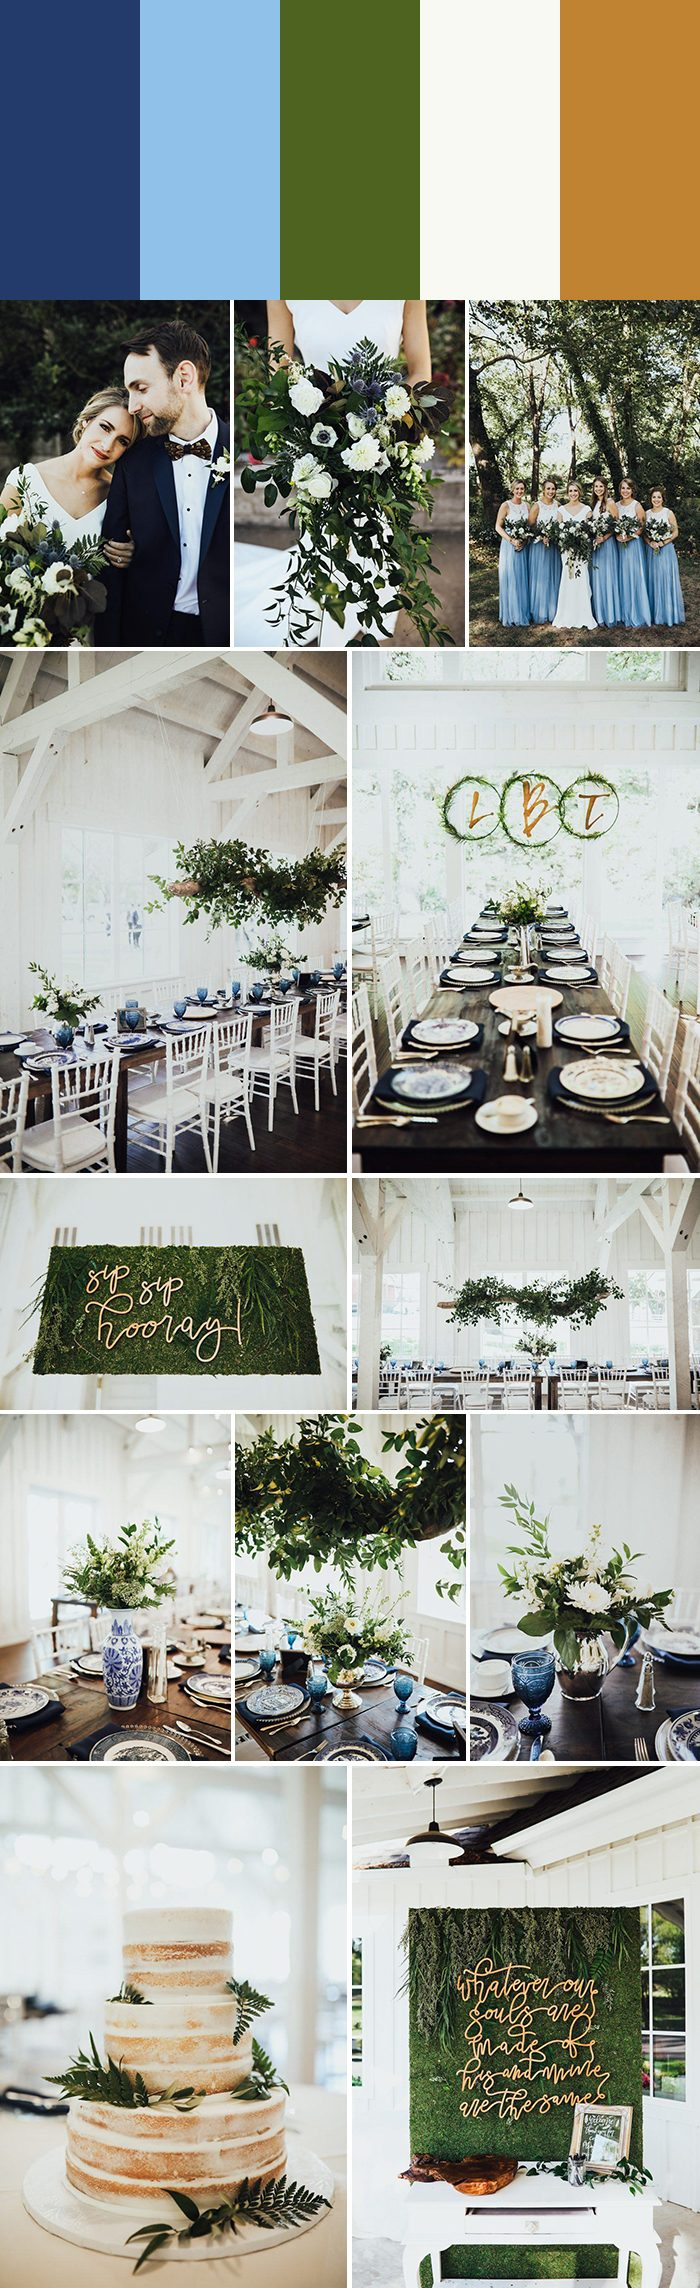 Wedding Themes | Wedding Theme Ideas | Wedding Theme Colors | Wedding Themes  Summer: February 2015